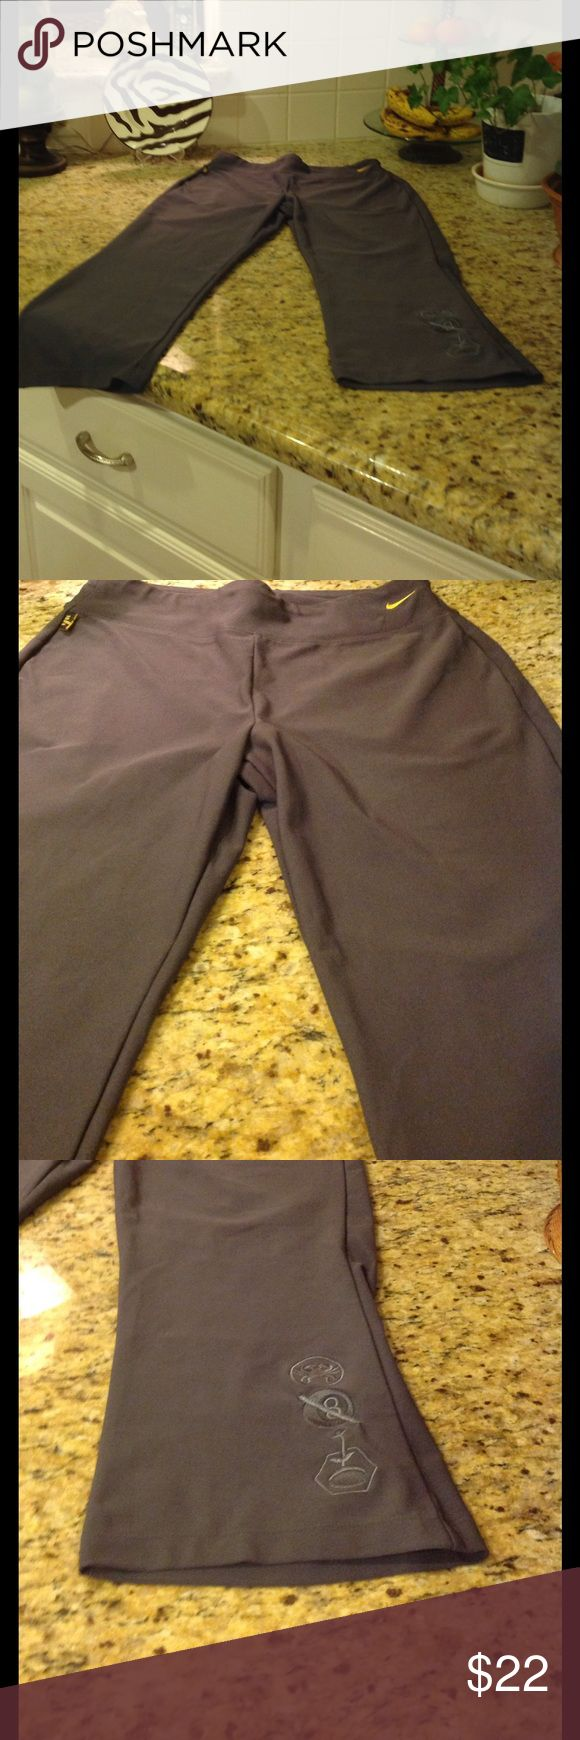 Like New! Nike Capris - Dri-Fit - color Gray Like New !  Only wore them a couple of times - Nike Dri-fit Capris - Gray color Nike Pants Capris